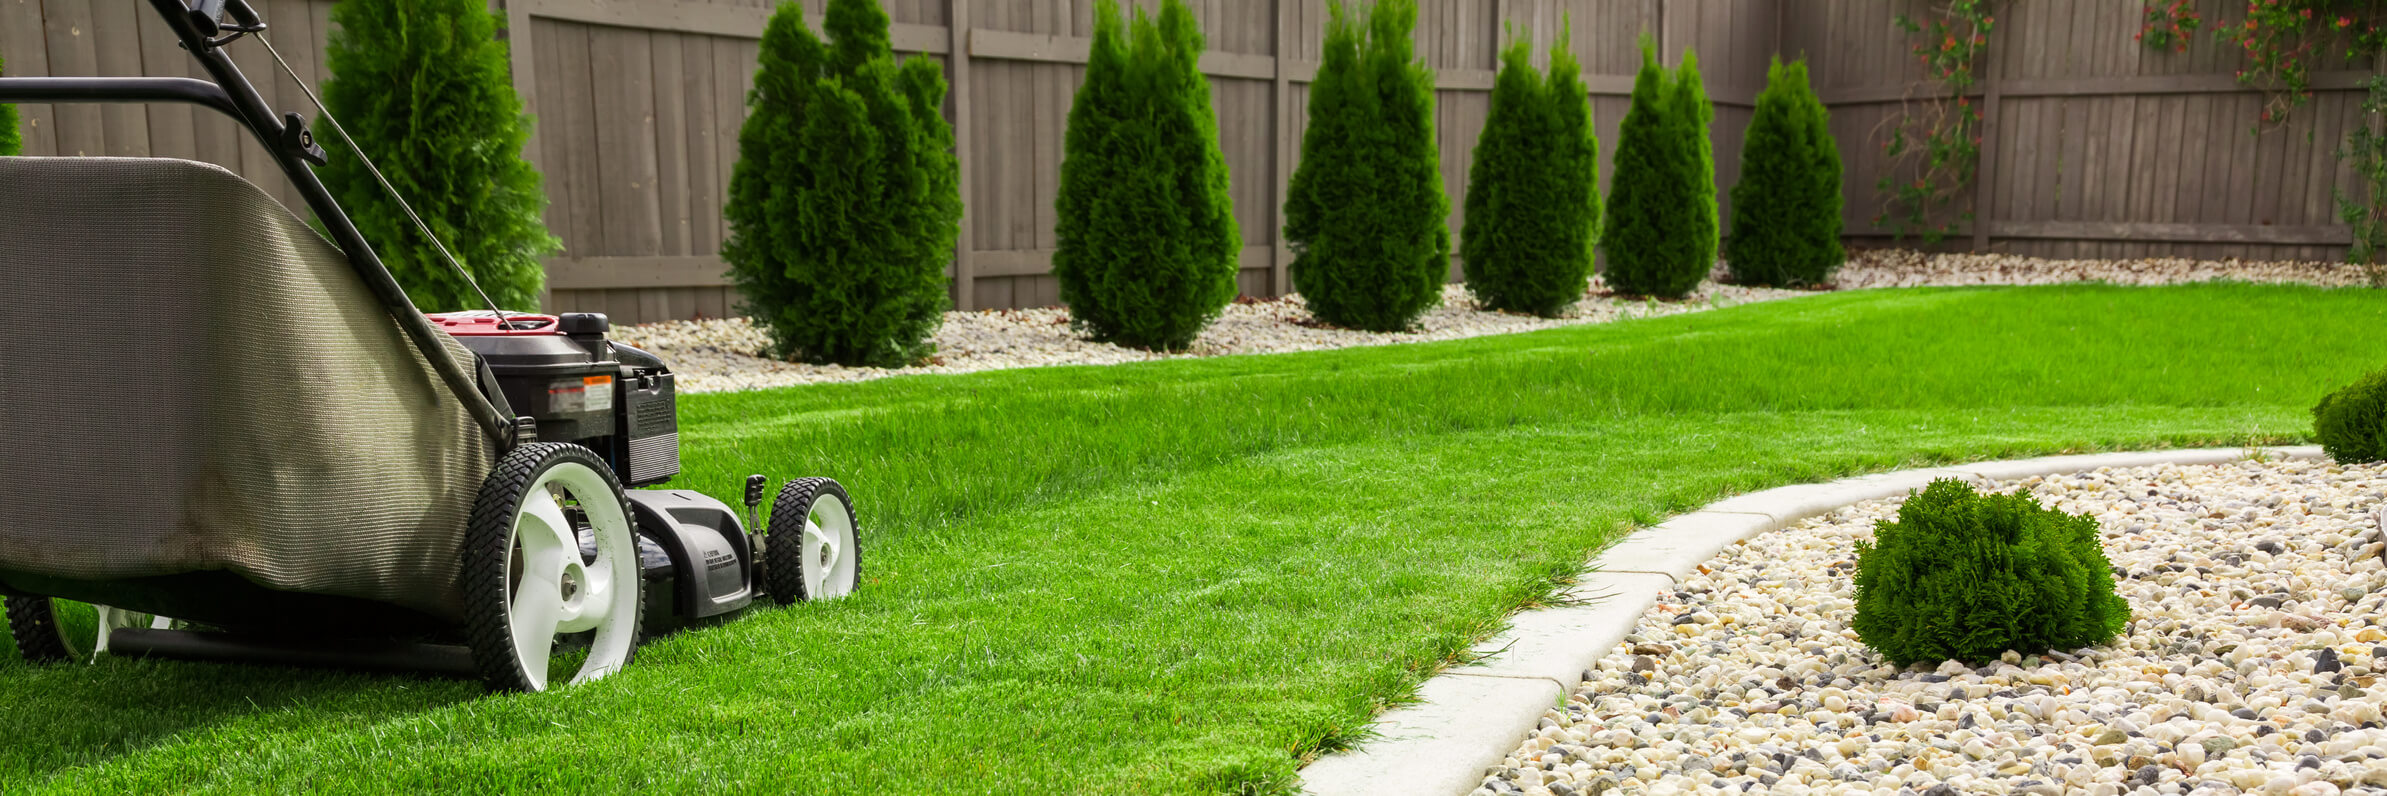 How To Celebrate Lawn & Garden Month